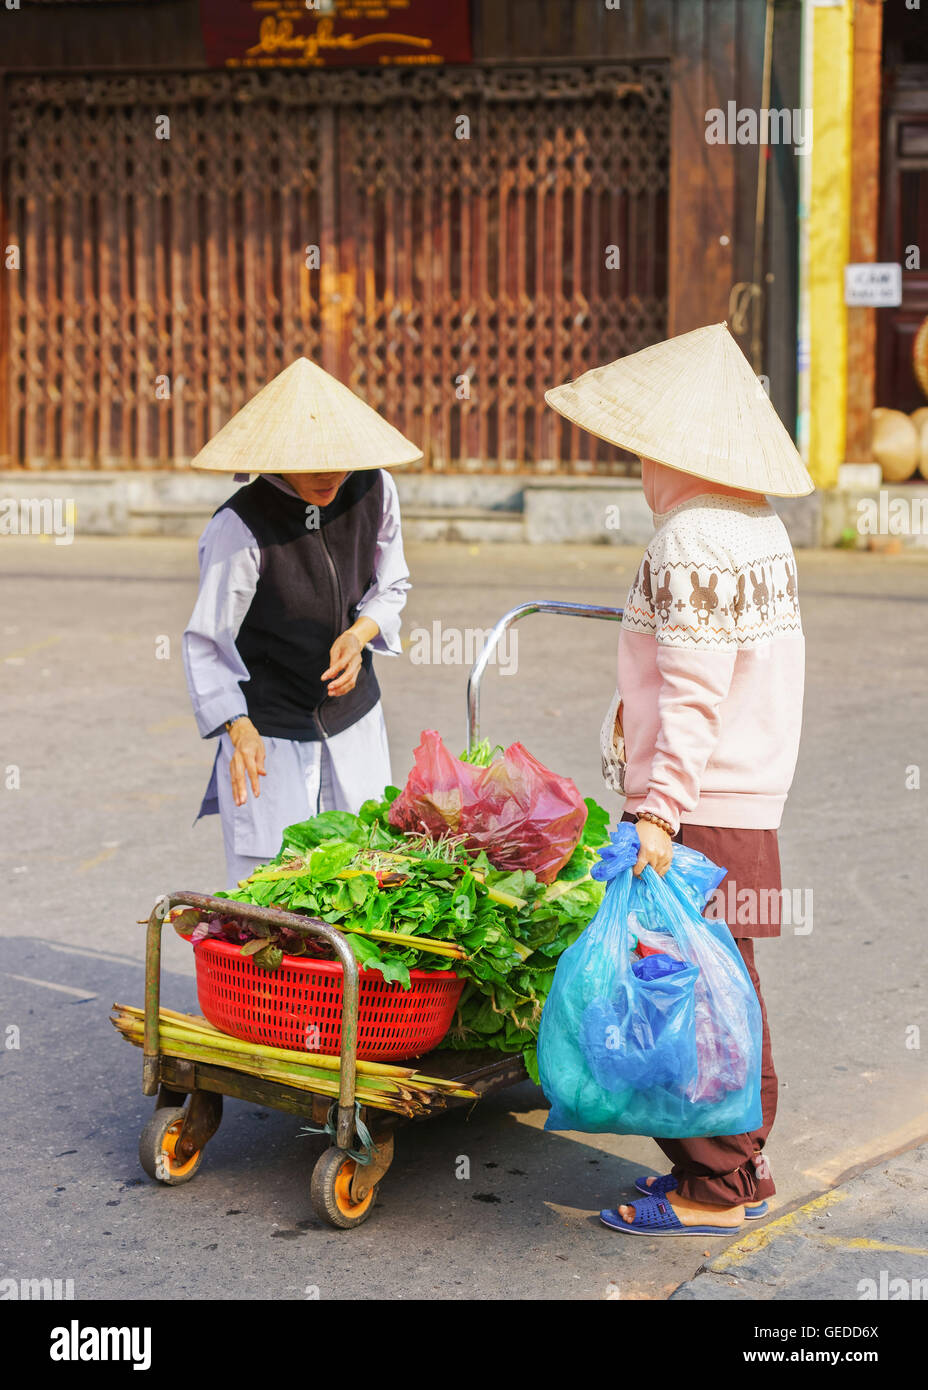 Hoi An, Vietnam - February 17, 2016: Asian buyer and trader in a traditional vietnamese hat selling fresh spinach Stock Photo